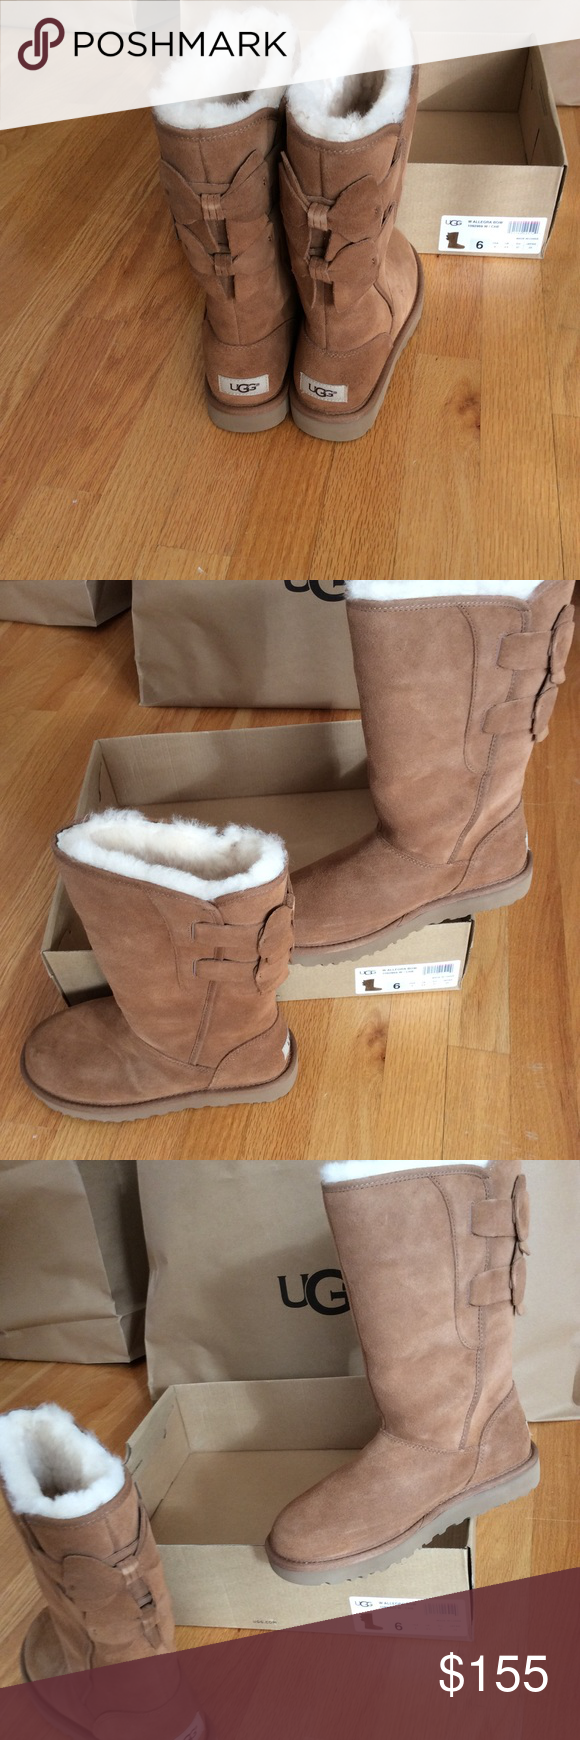 1efaaf55fb2 UGG Allegra bow Authentic UGG Allegra bow. New in a box. Please ...